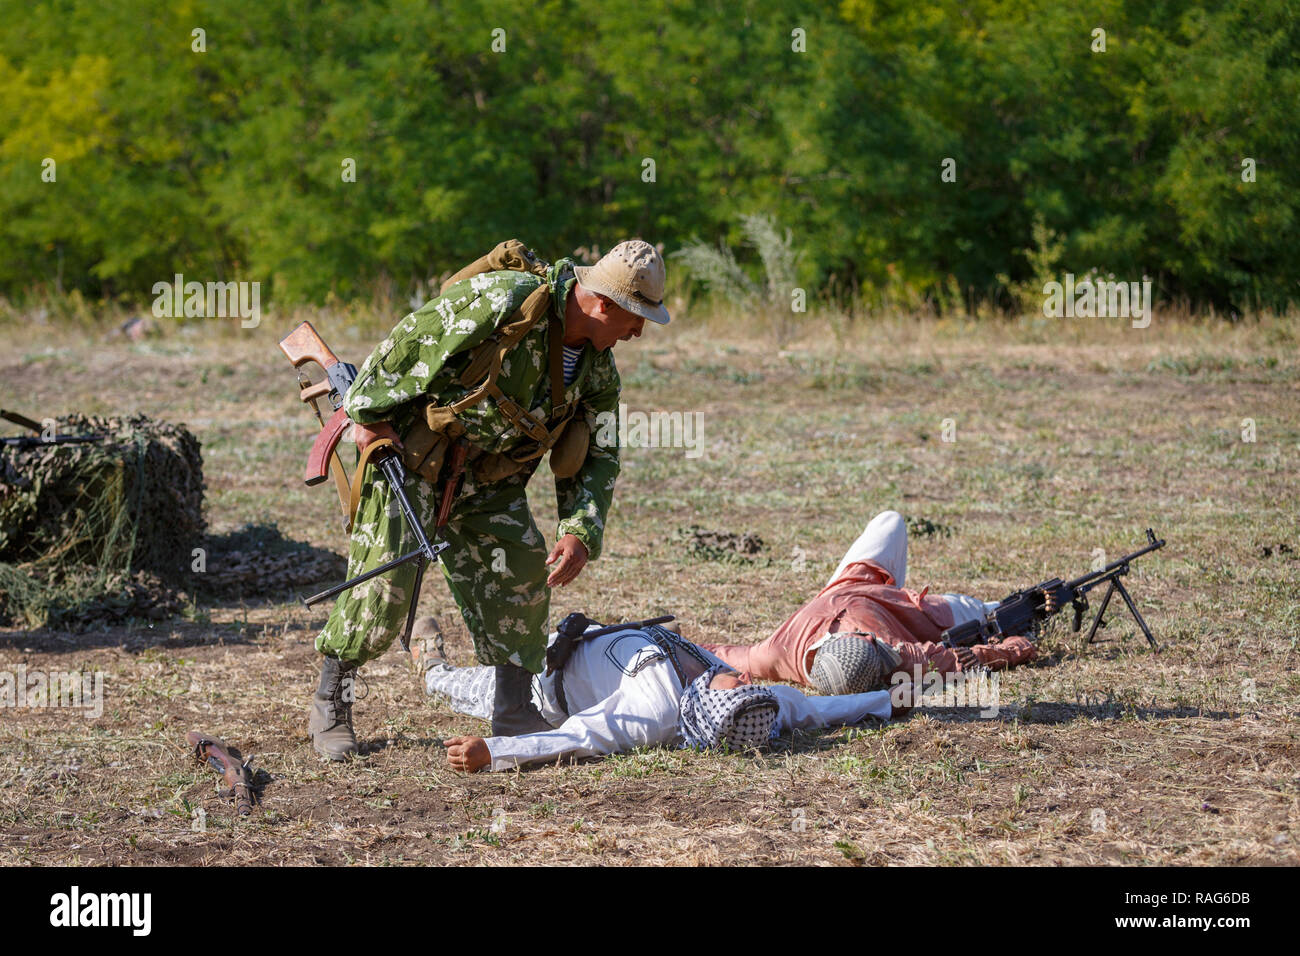 Historical festival Sambek Heights. Soviet soldier with a machine gun in his hands leans over a dead mojahed - Stock Image